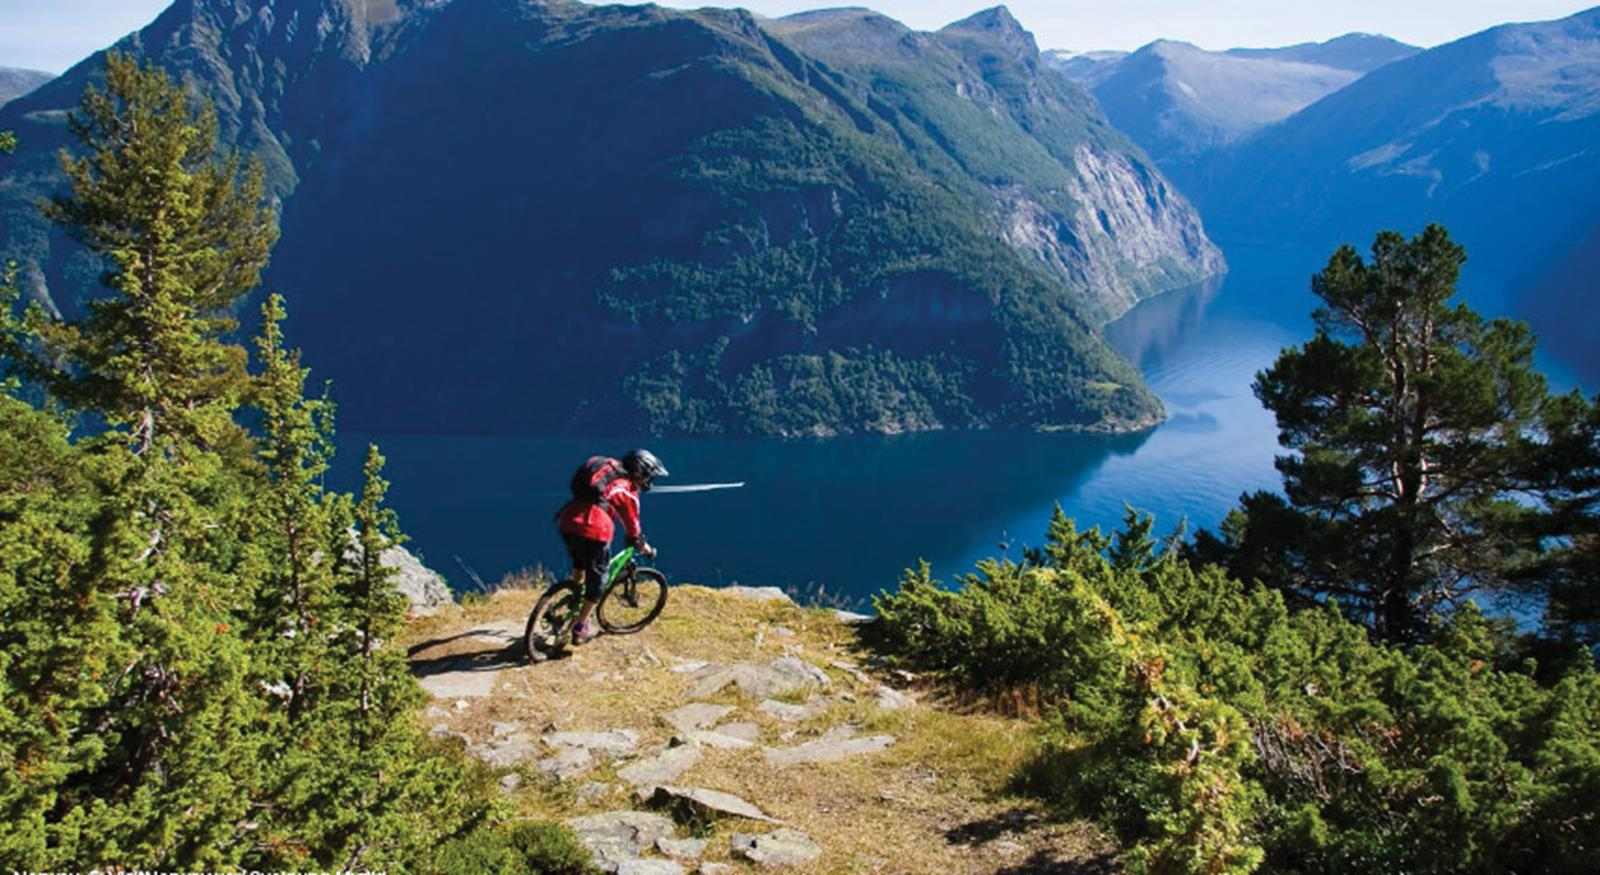 More Countries Show Potential for Adventure Tourism